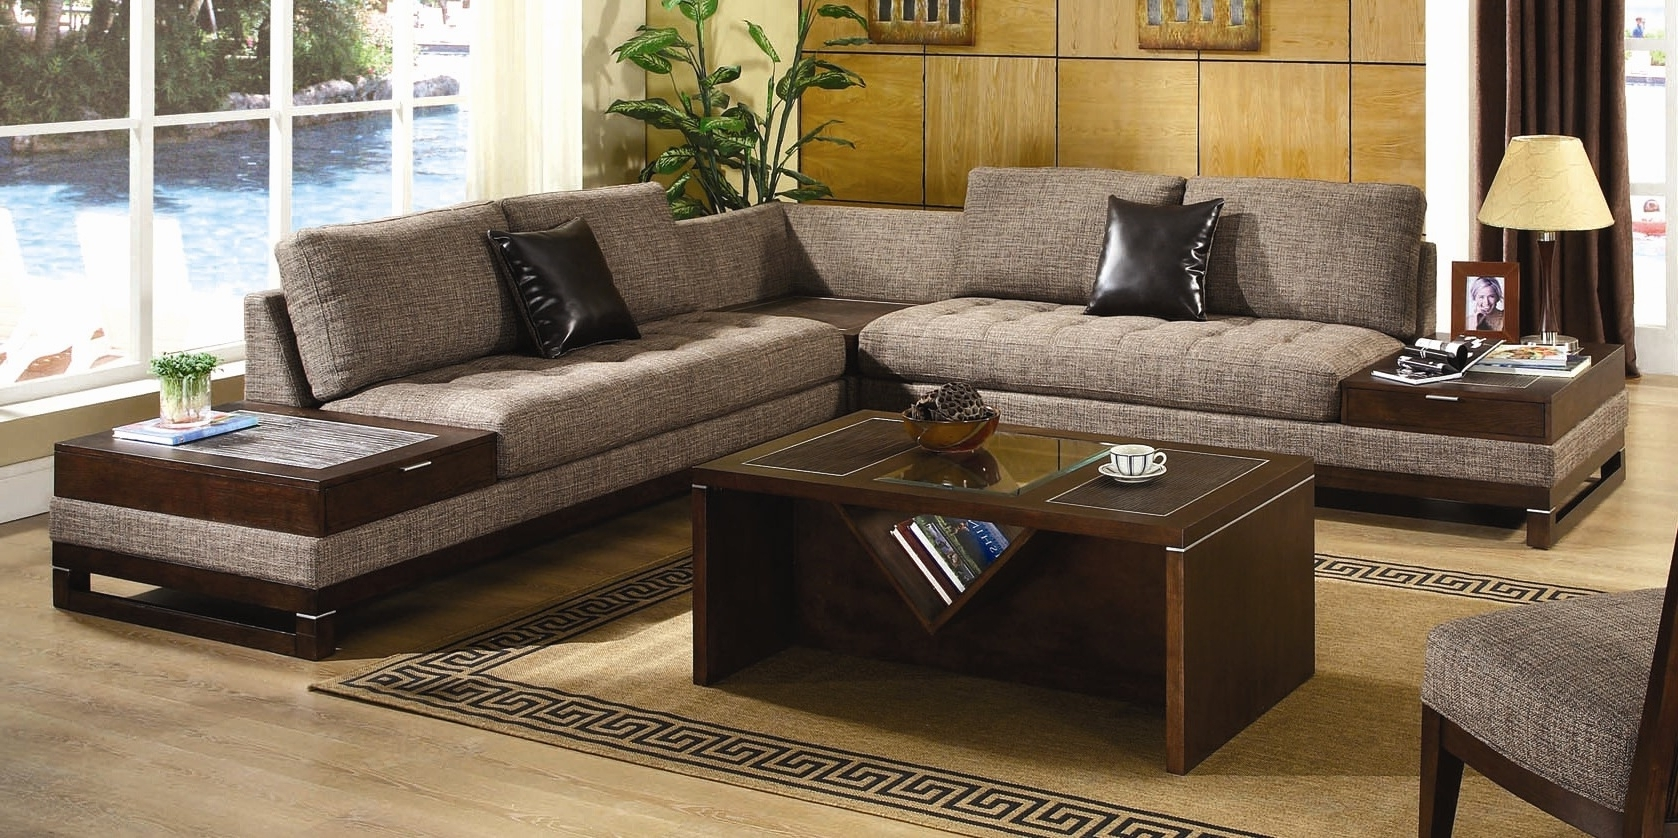 Furniture: Discount Living Room Furniture Inspiration Bob's In Newest Living Room Sofa And Chair Sets (View 3 of 15)